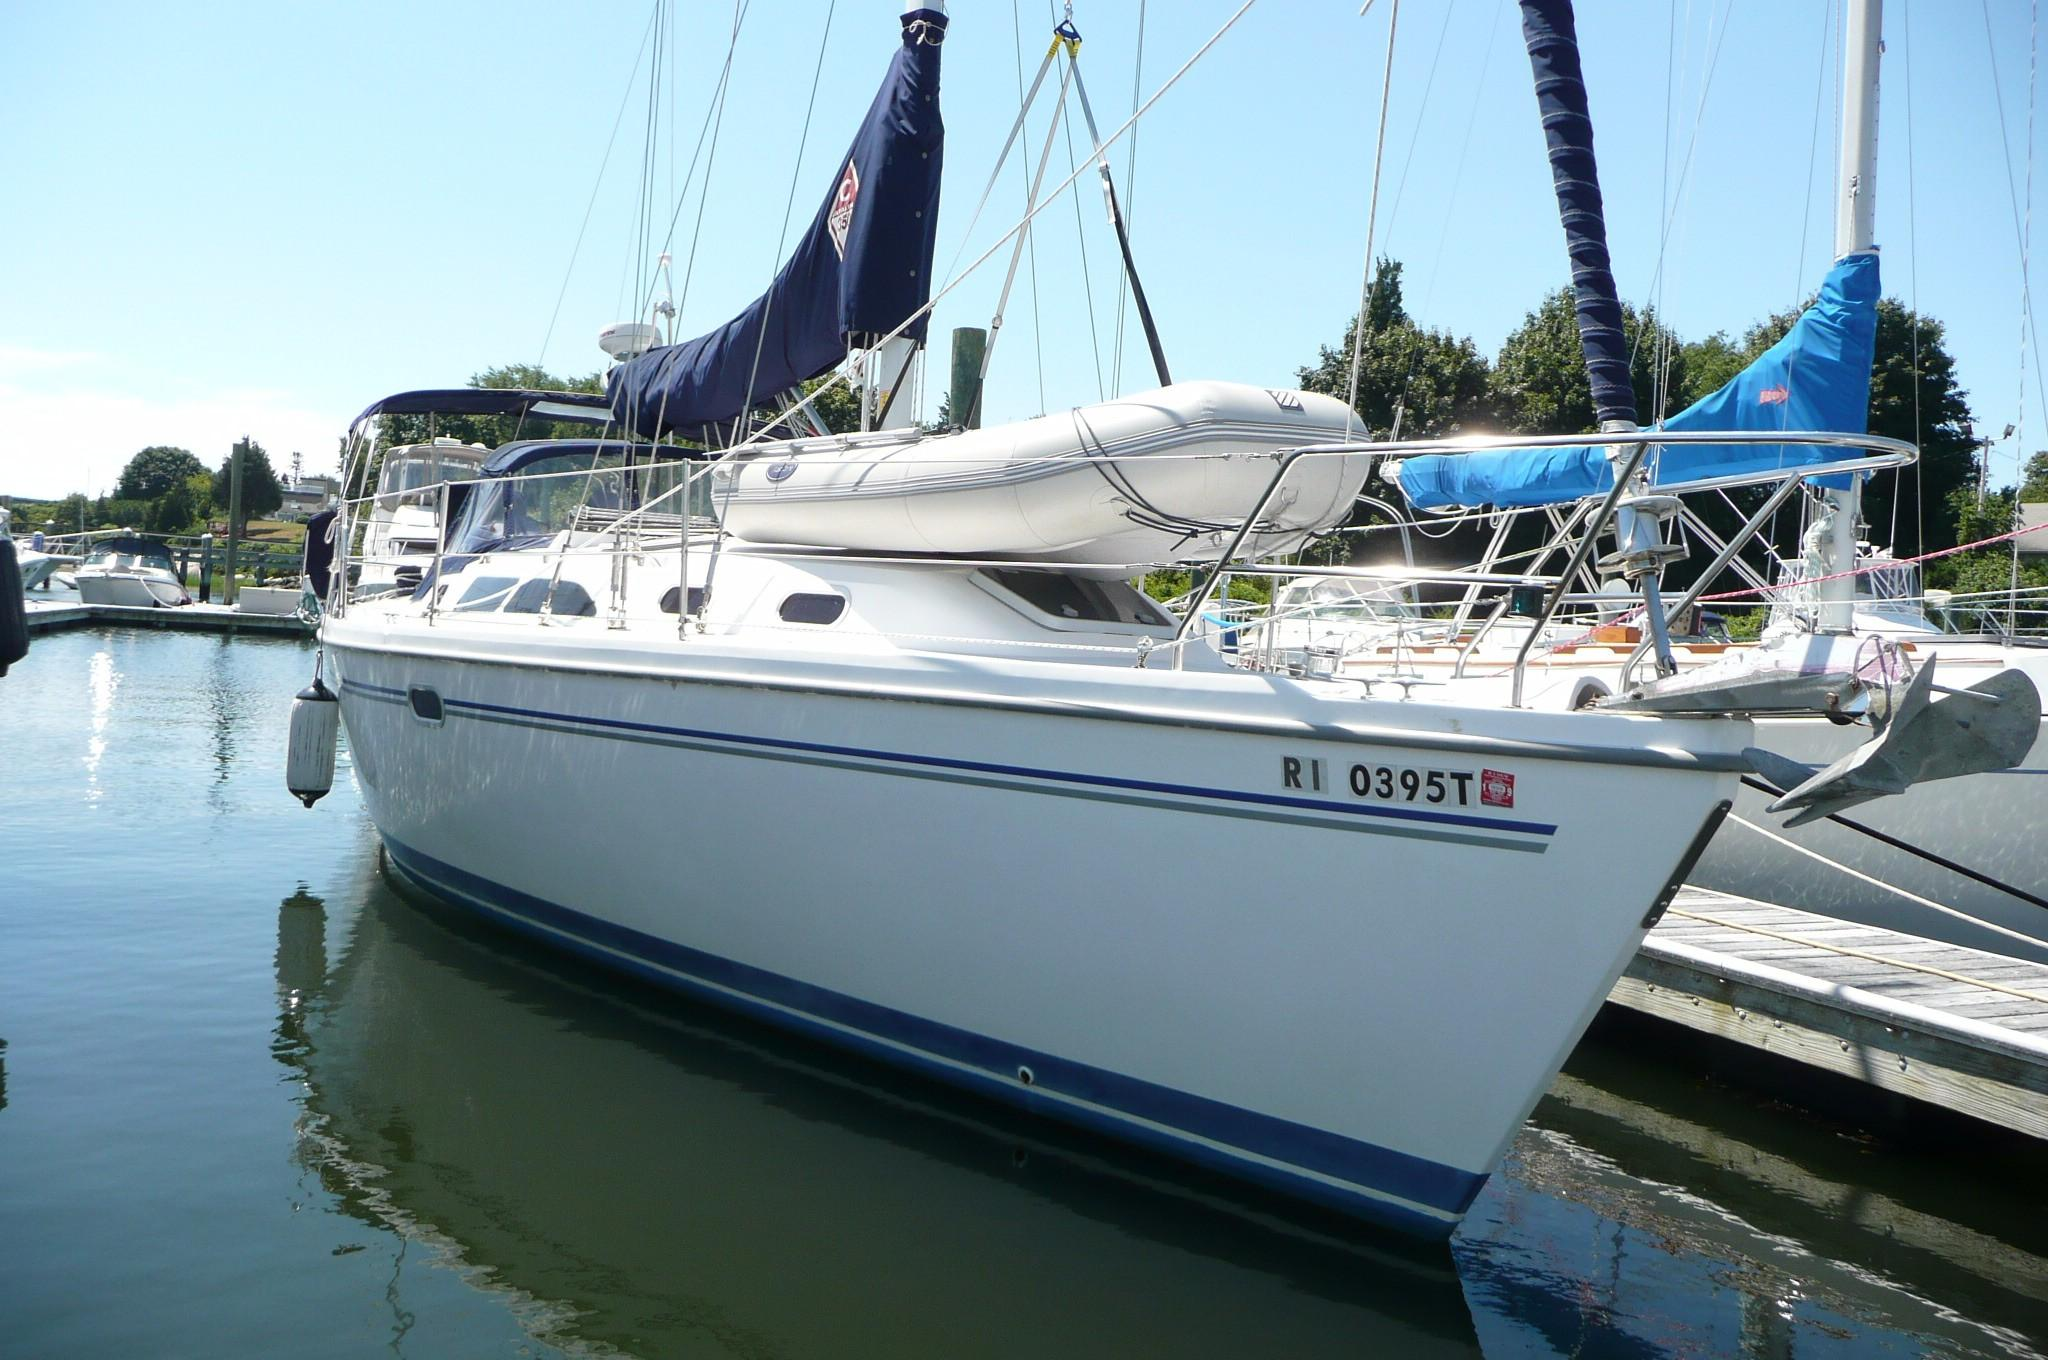 2003 catalina 350 sail boat for sale www yachtworld com rh yachtworld com Catalina 350 Brochure Catalina 350 Interior